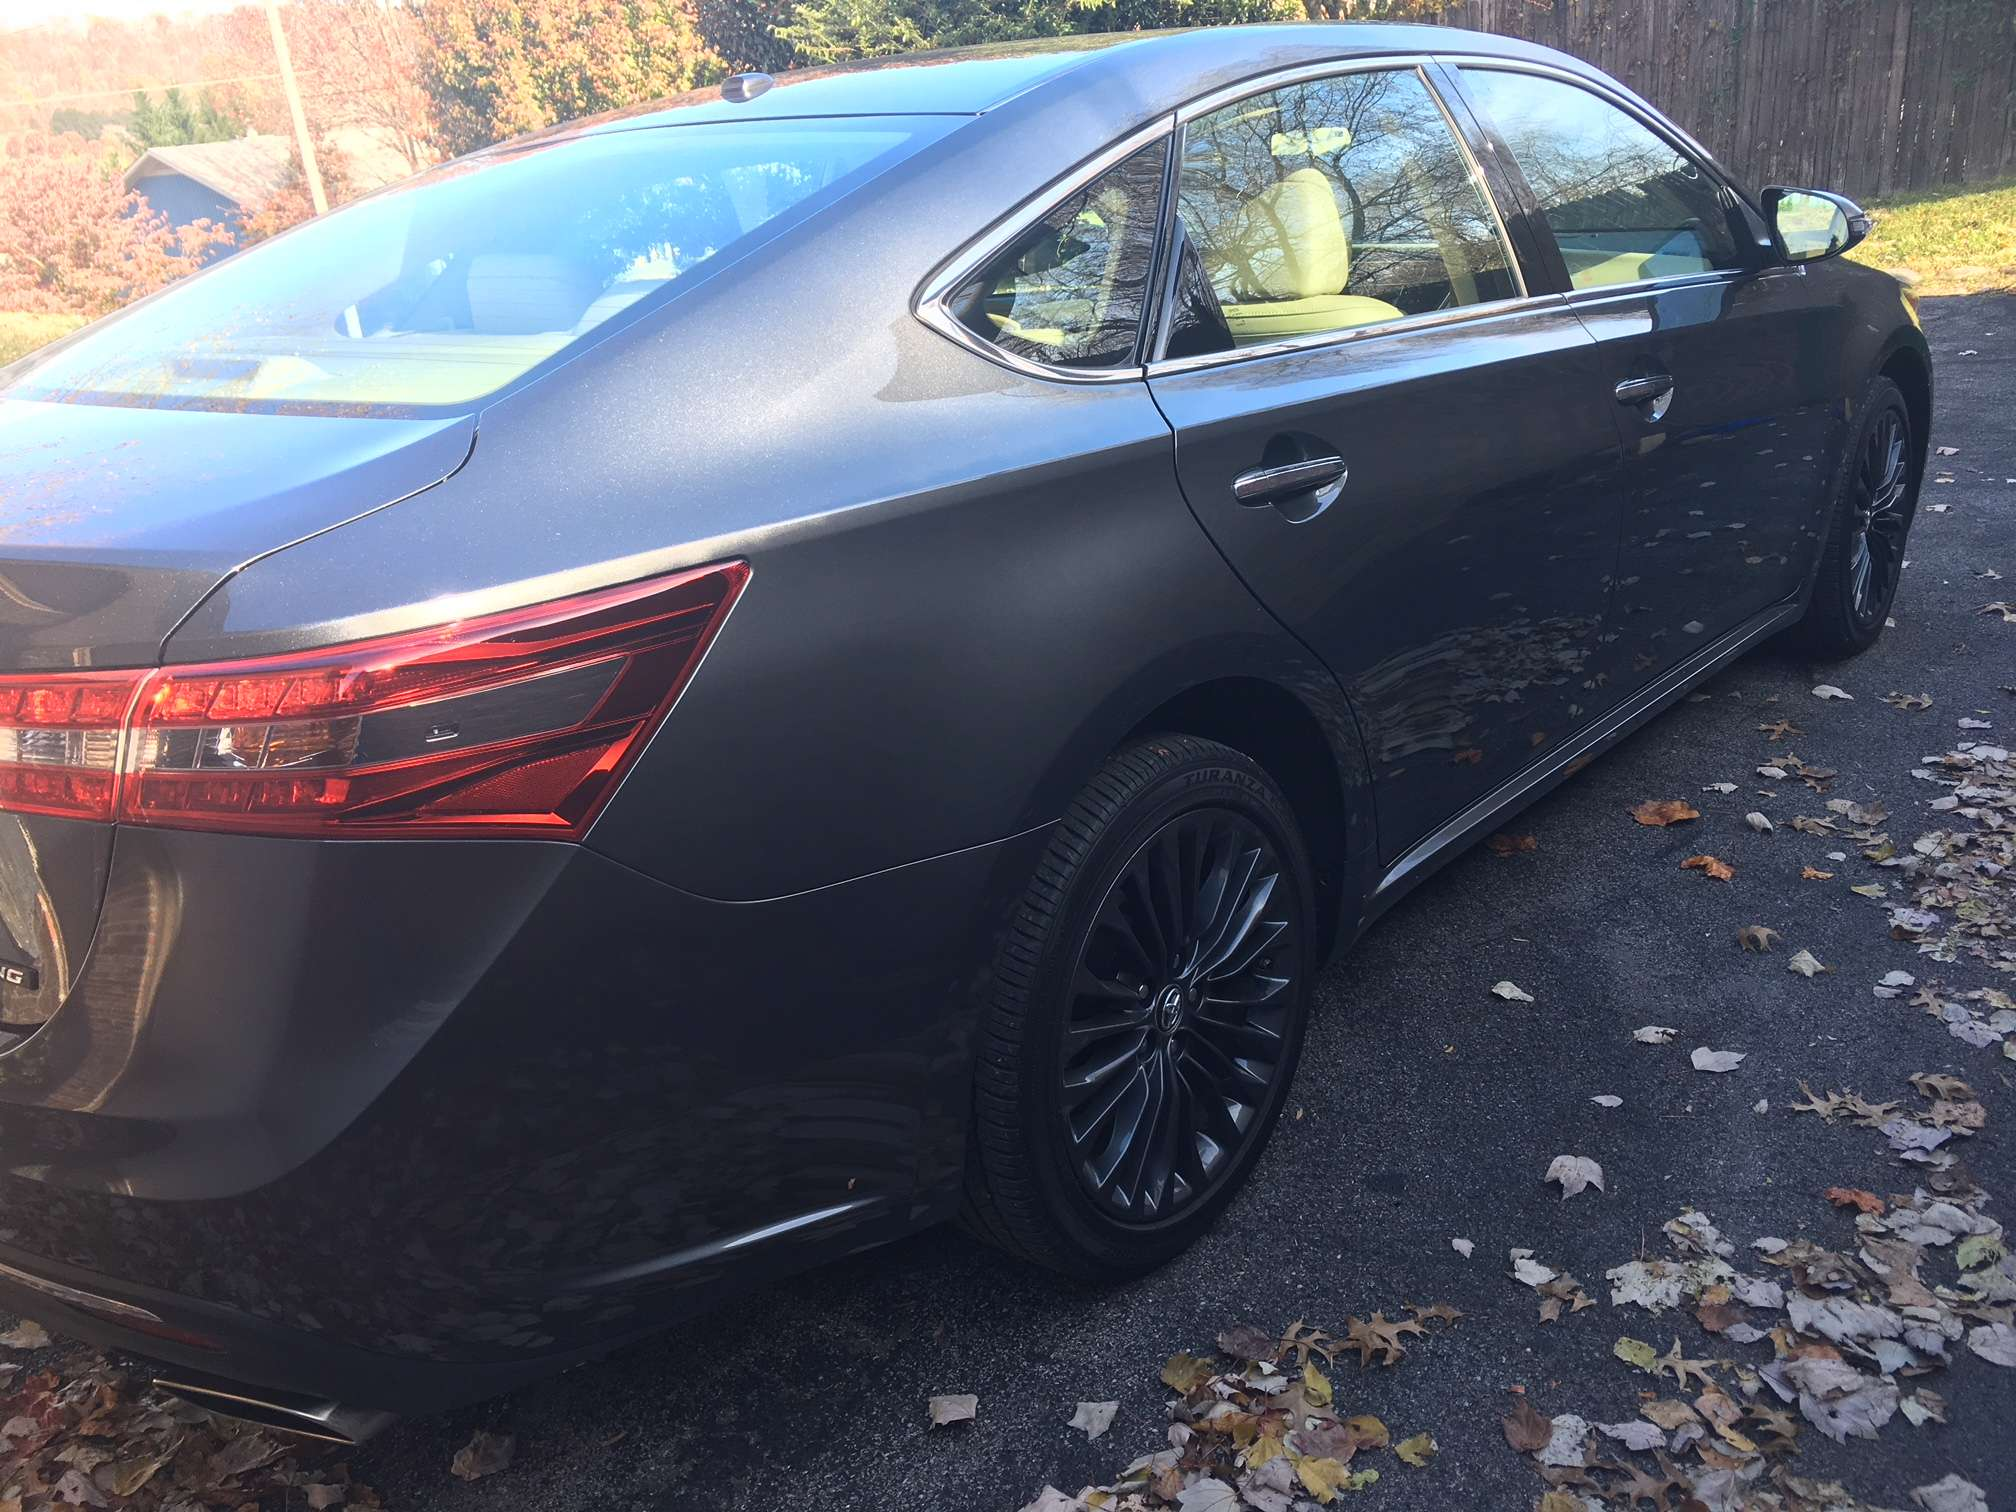 The Toyota Avalon has not only won awards from some of the most well known names in the automobile industry, but it wins my award for quality, performance, safety and luxury! I highly recommend the Toyota Avalon if you are in the market for a new vehicle! #ad #DriveToyota #LetsGoPlaces #Vehicle